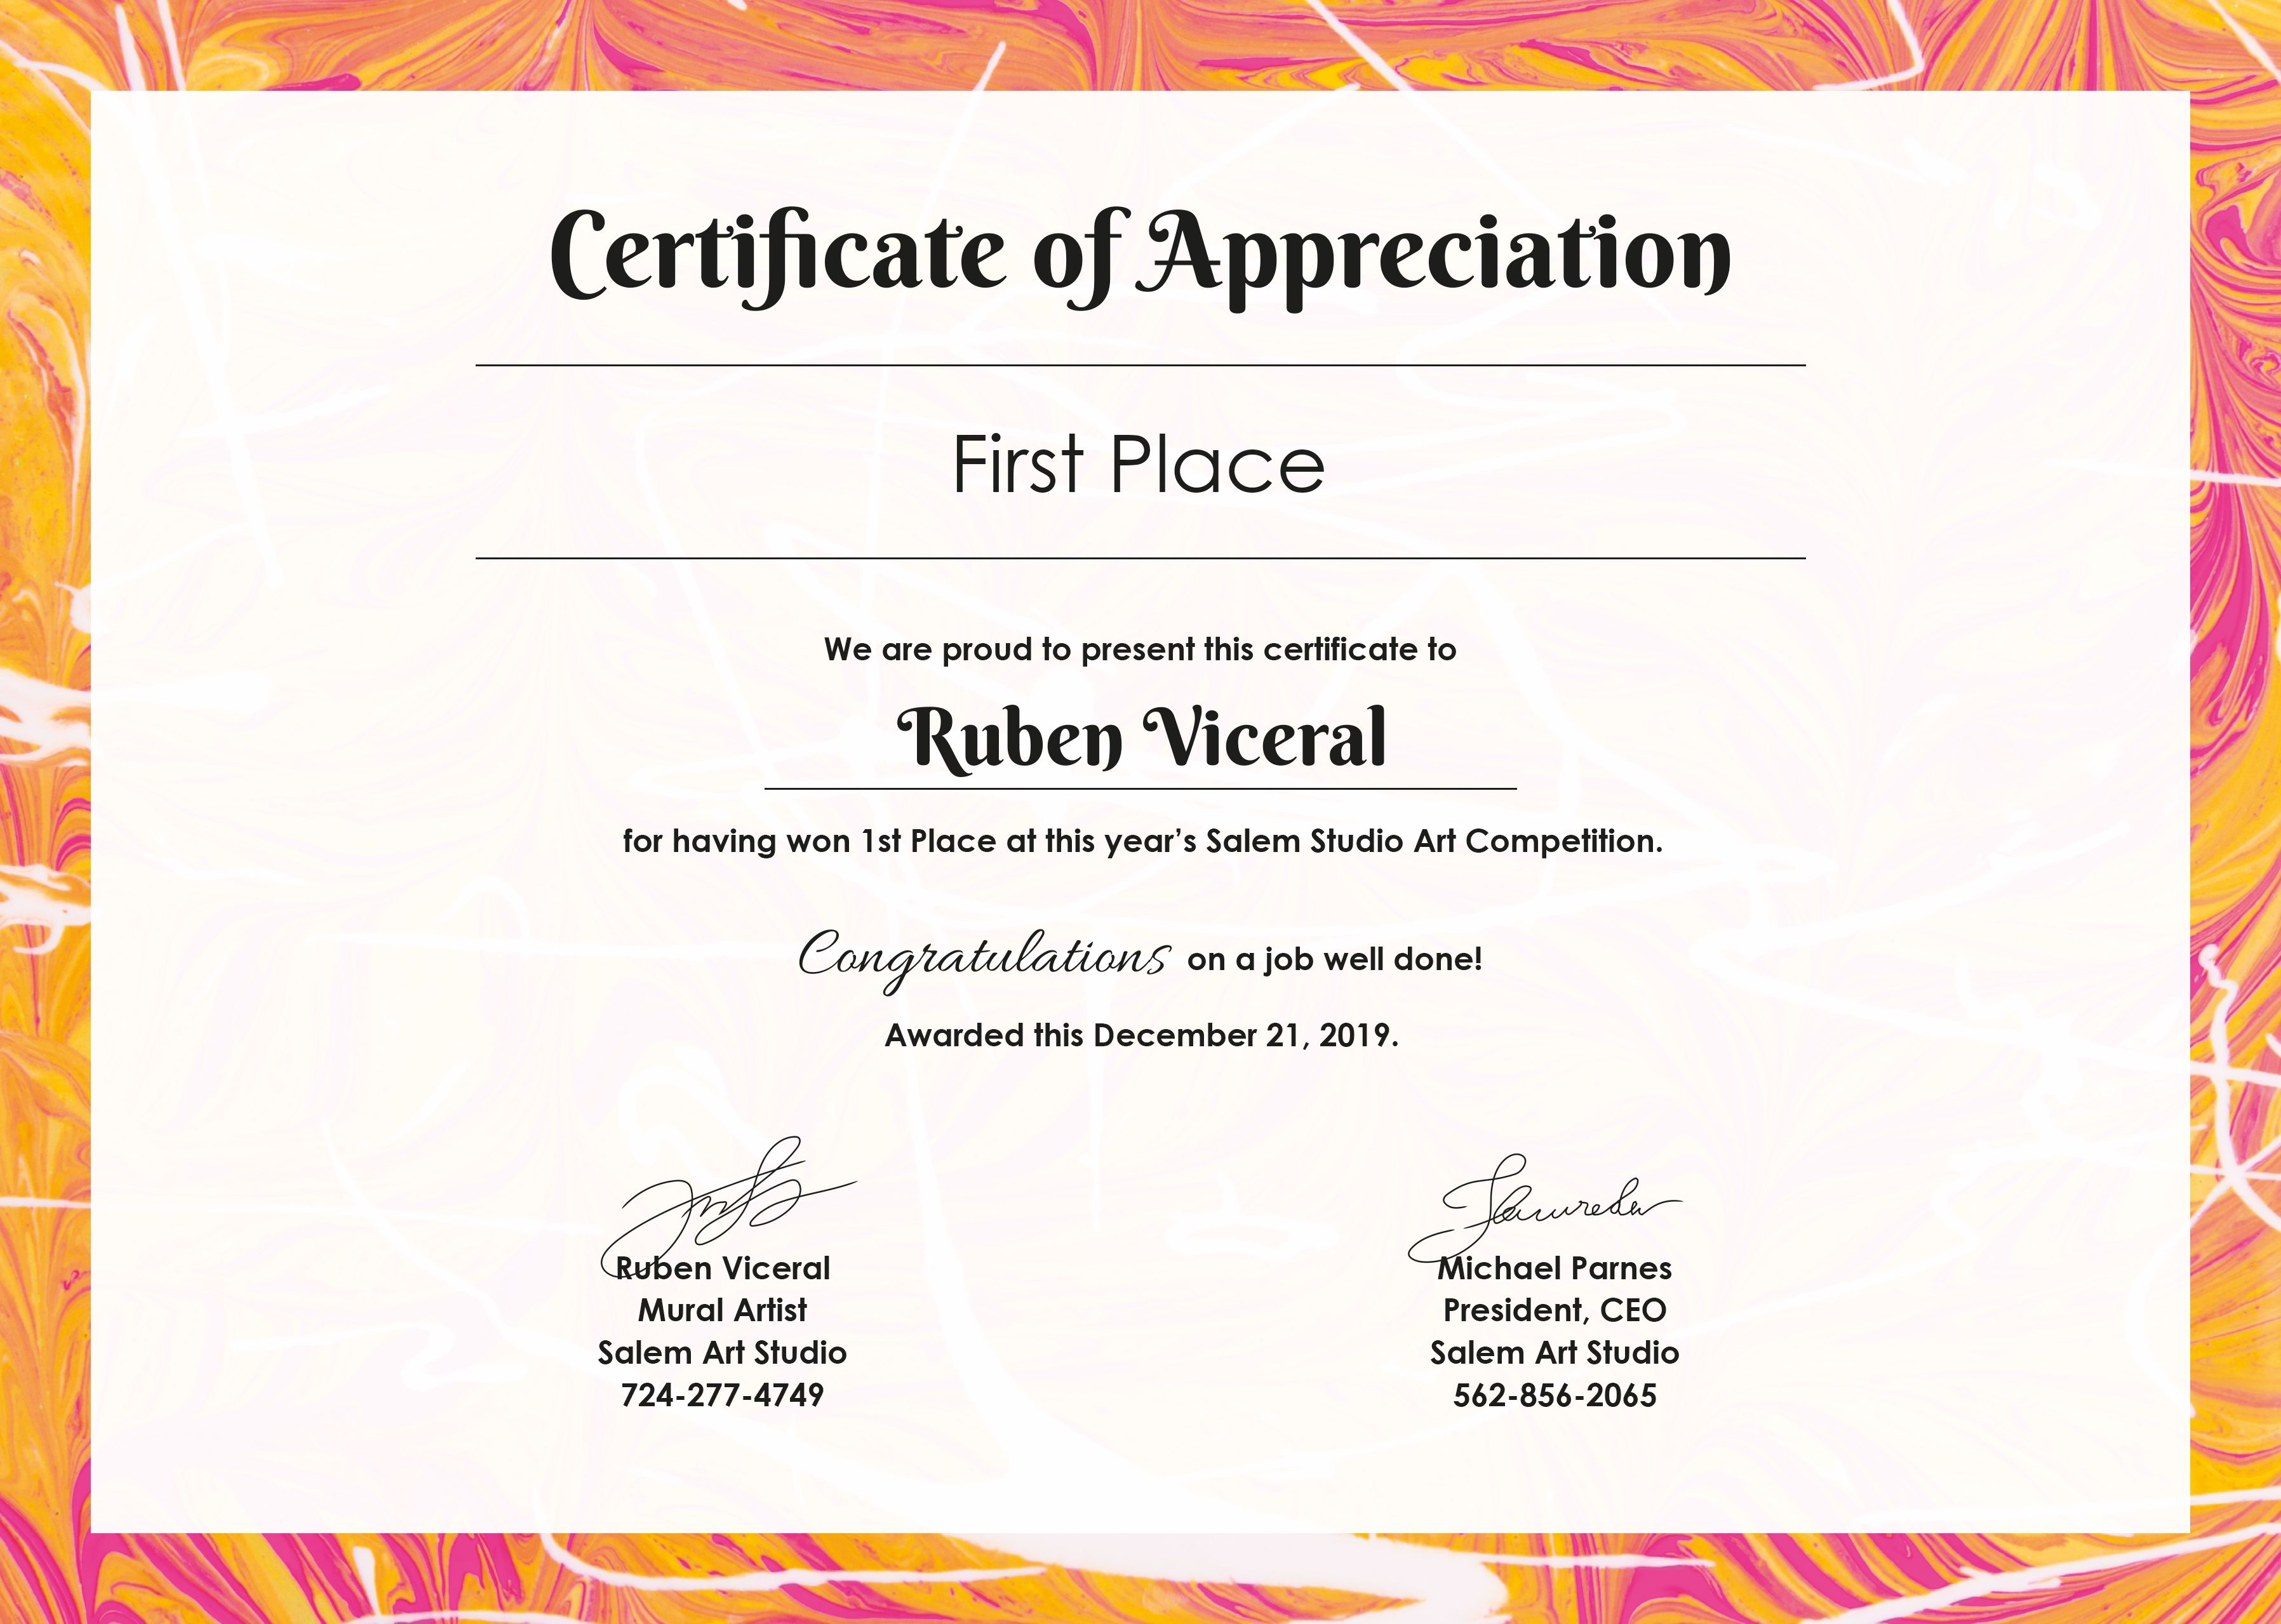 Appreciation Certificate Template Free Jpg Google Docs Illustrator Indesign Word Outlook Apple Pages Psd Publisher Template Net Certificate Of Appreciation Certificate Templates Certificate Of Recognition Template Google docs certificate of appreciation